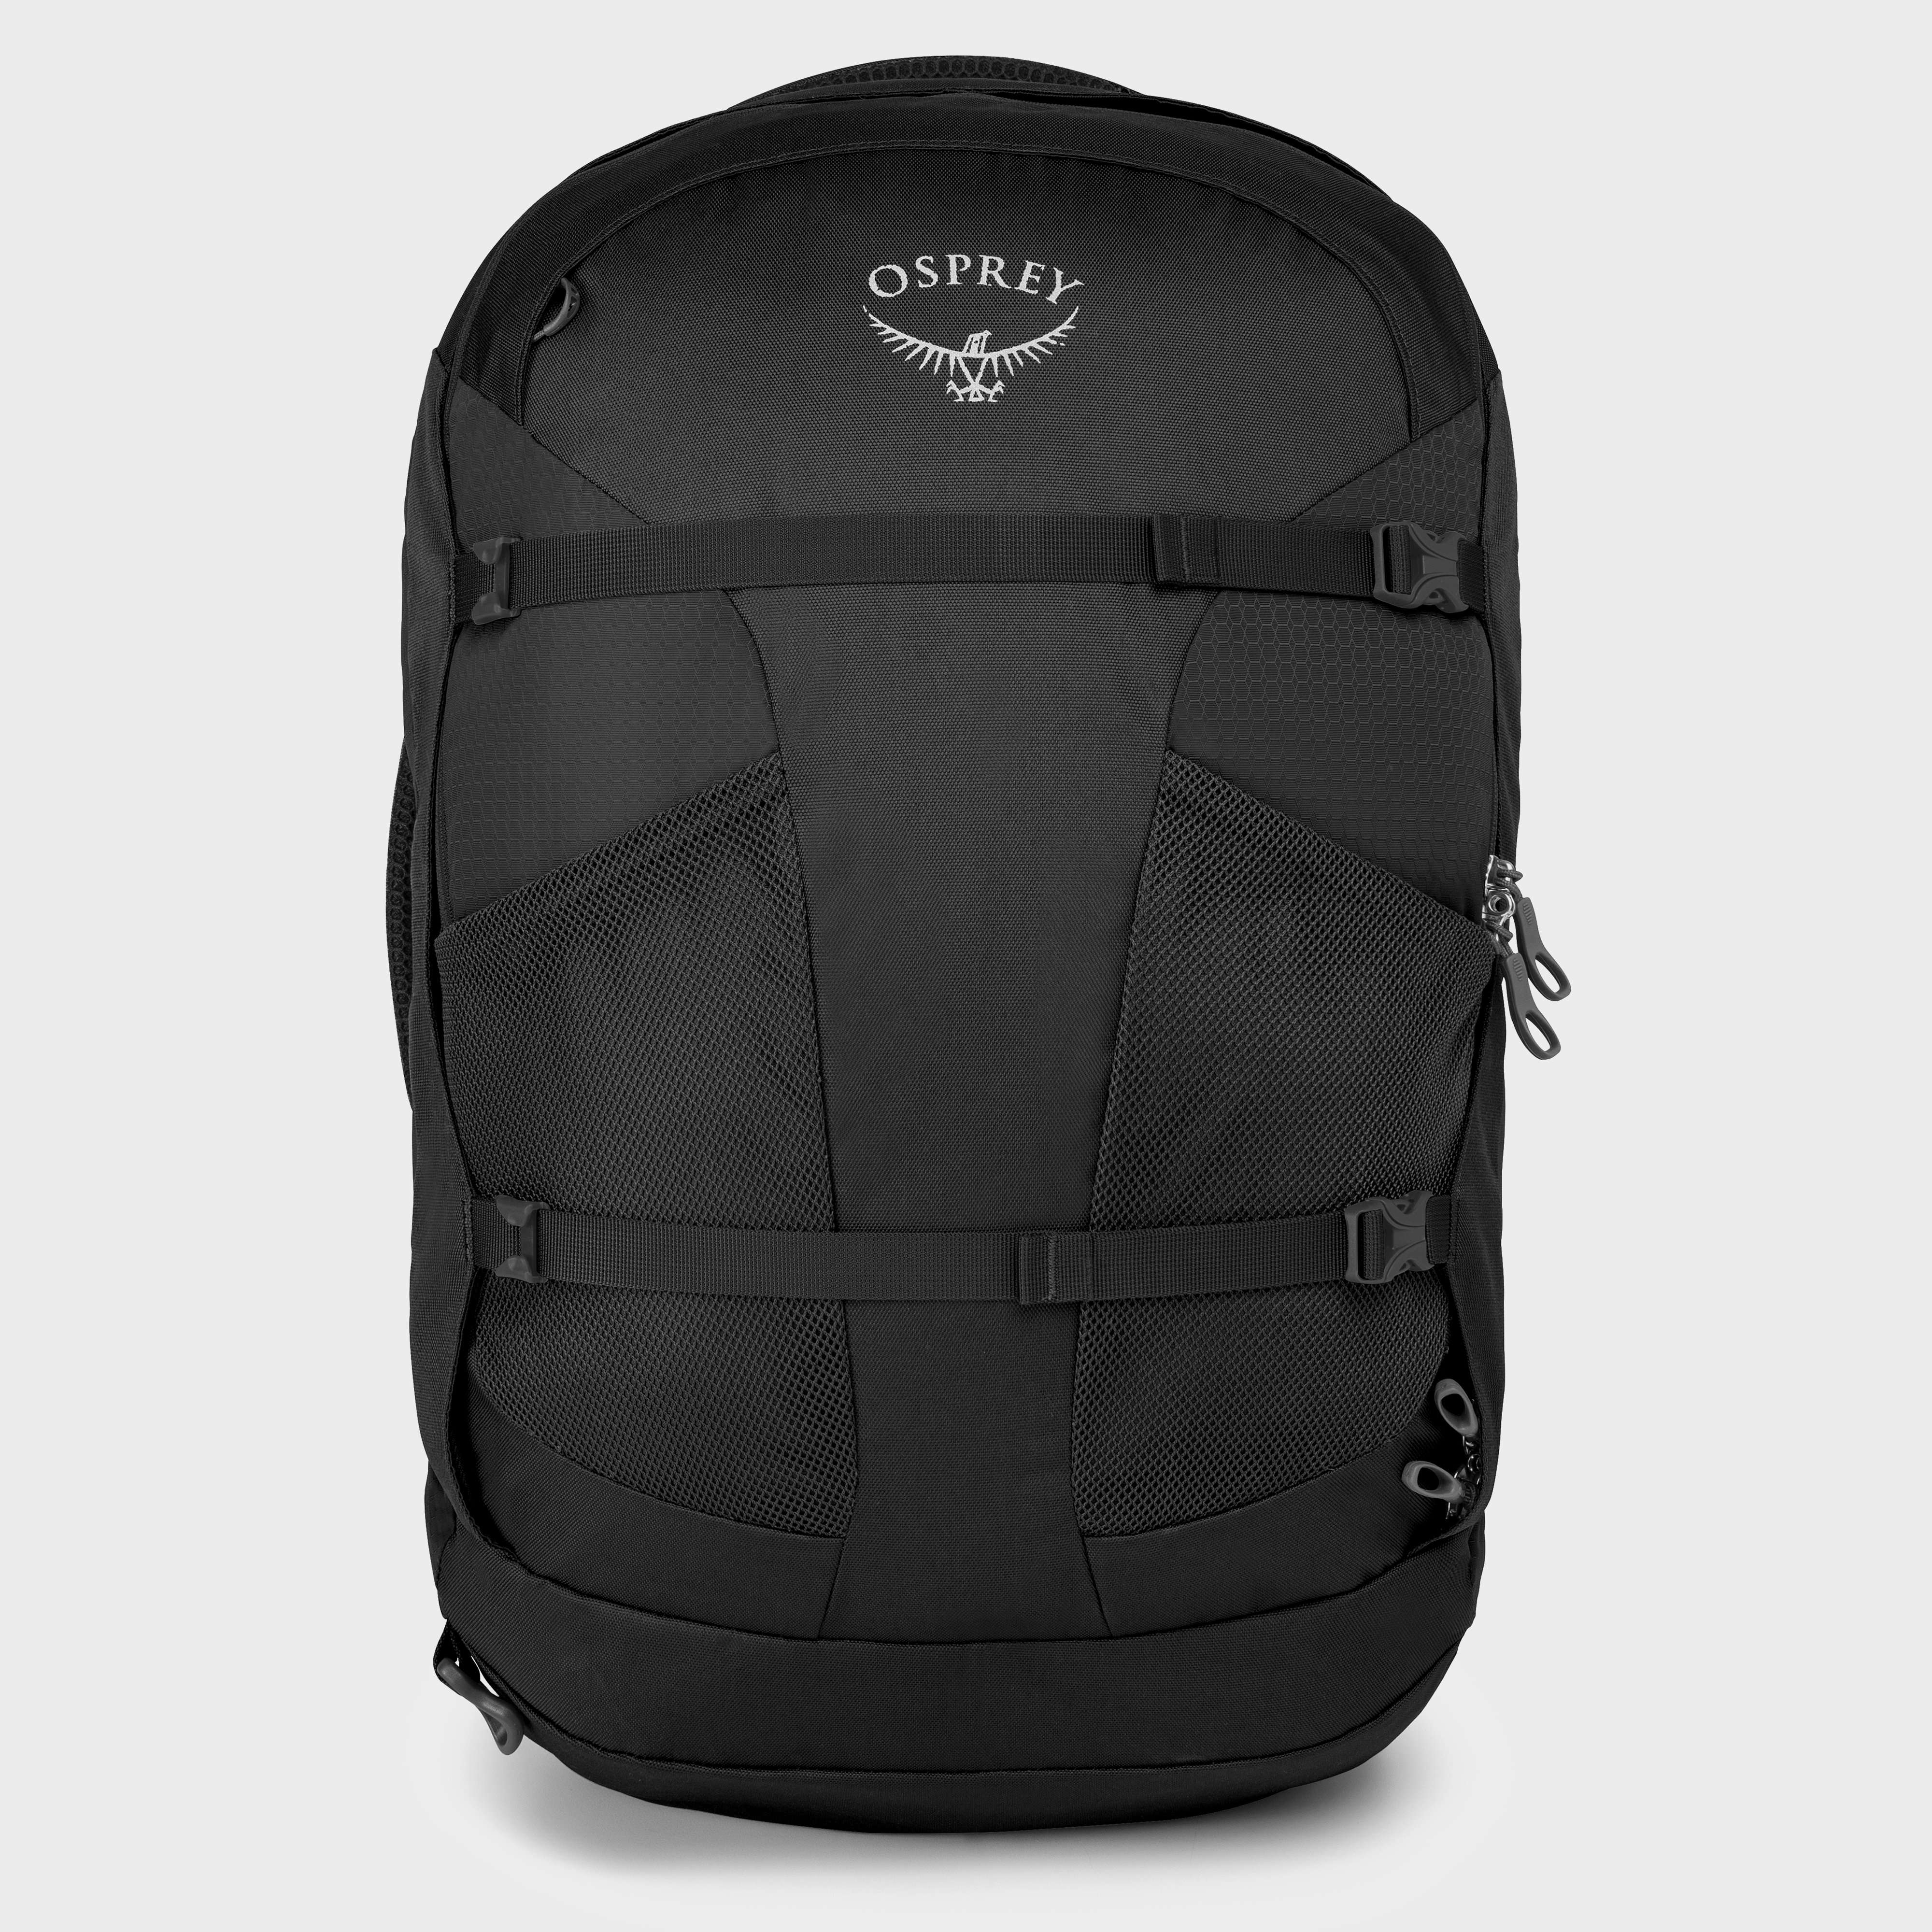 OSPREY Farpoint 40 Litre Travel Backpack (M/L)